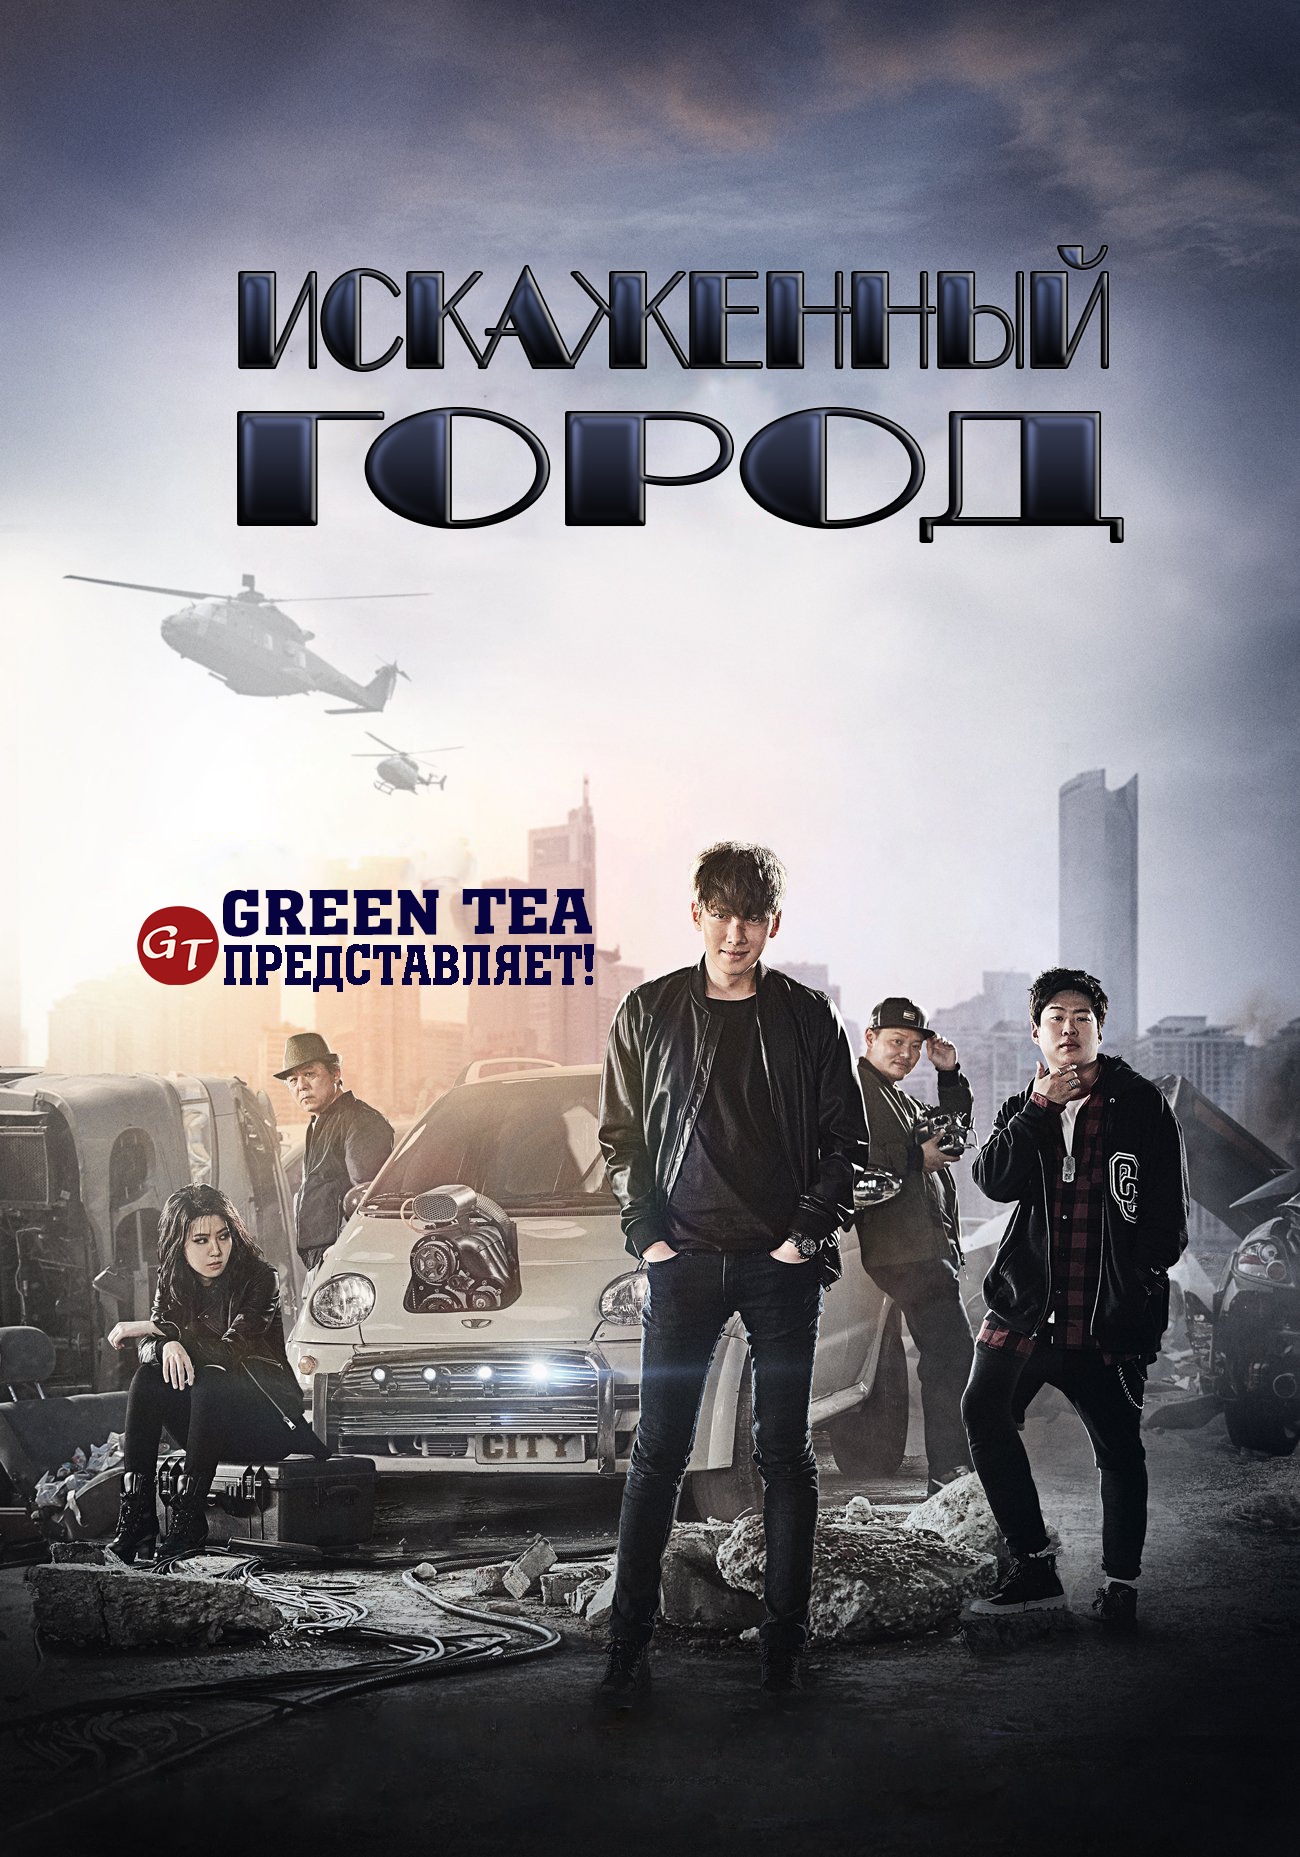 Искаженный город / Fabricated City / Jojakdwen Doshi